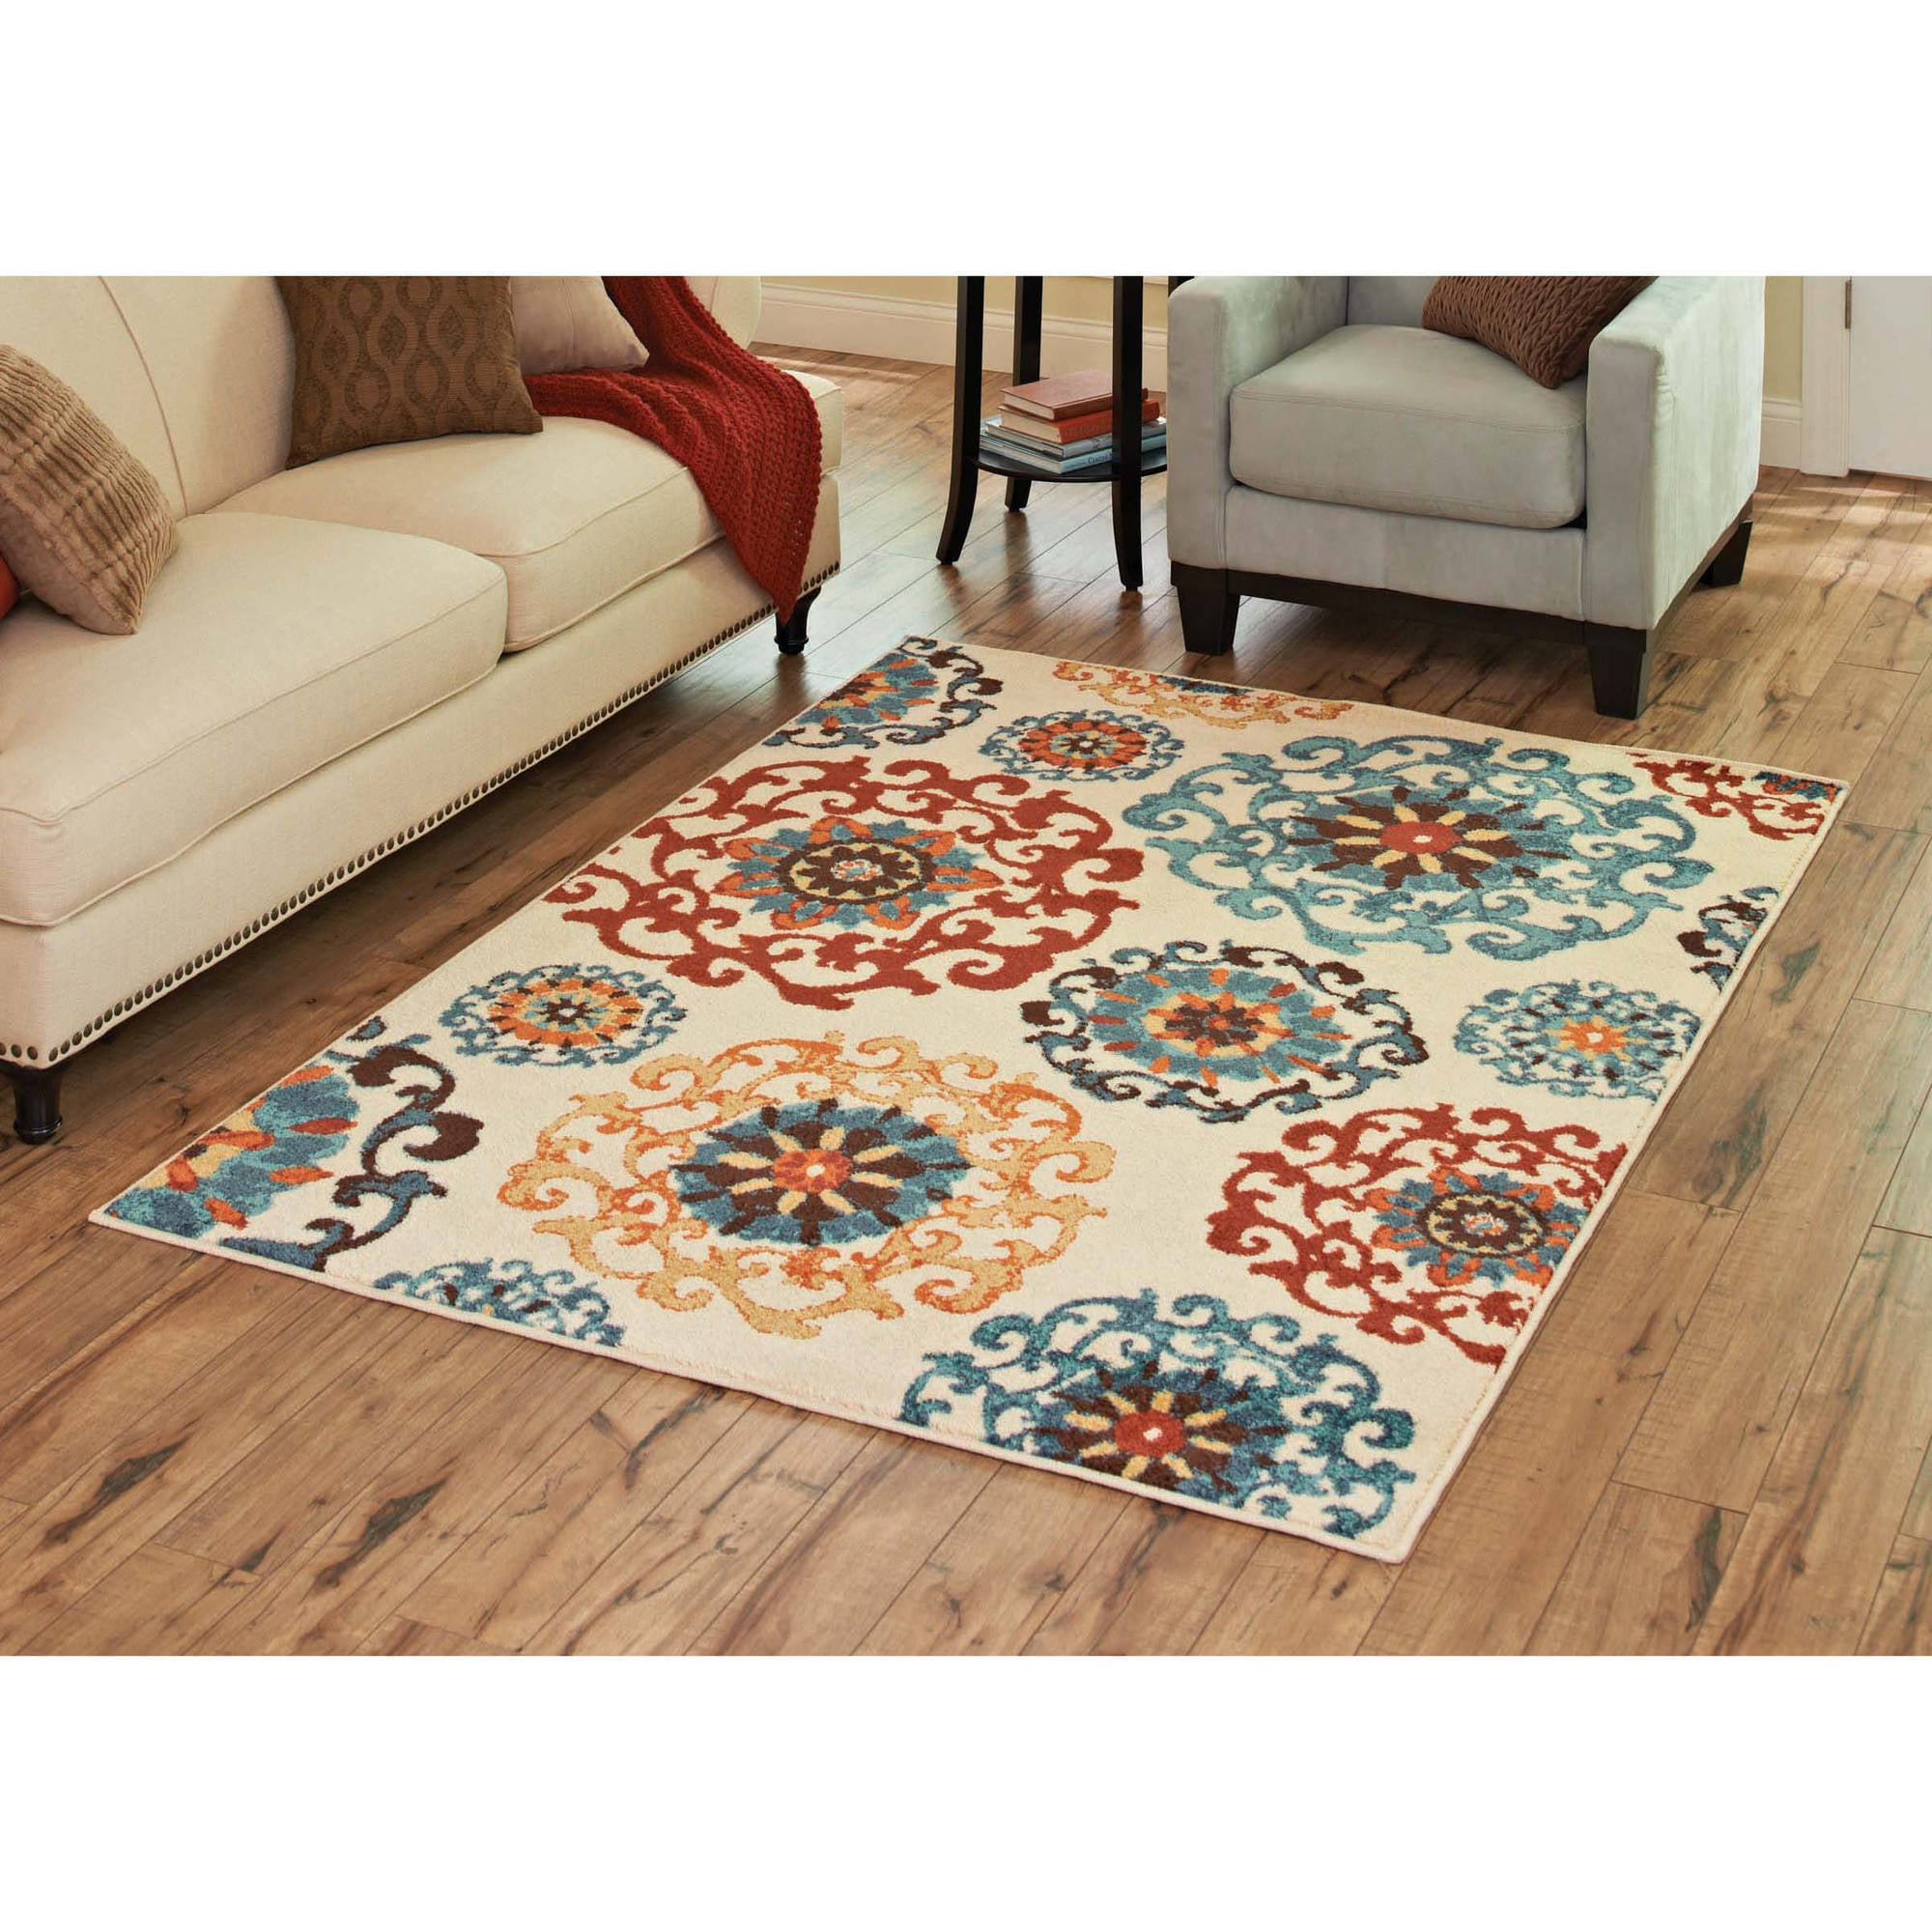 Walmart Rugs For Living Room Better Homes And Gardens Suzani Area Rug Or Runner Walmartcom